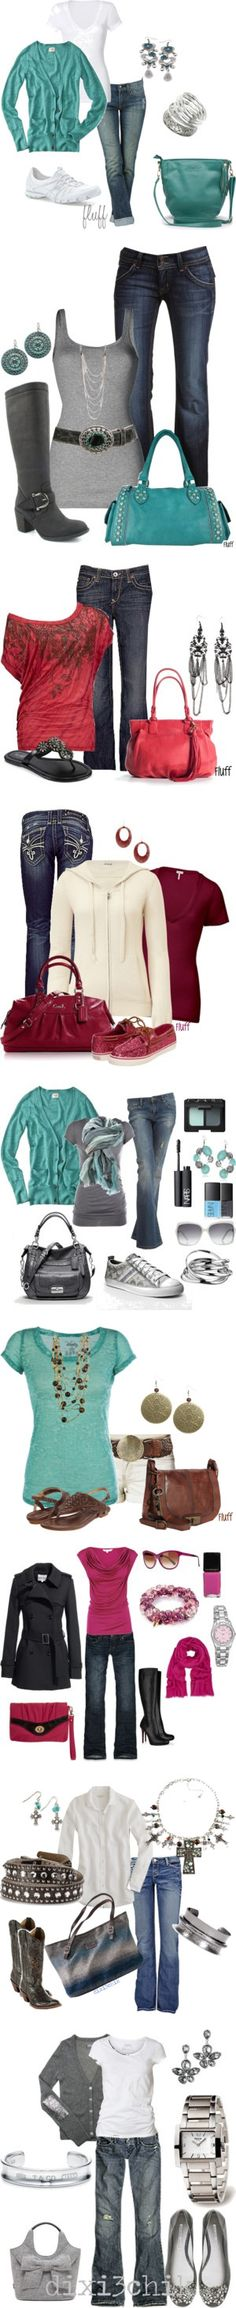 """Relaxed"" by mspaulding on Polyvore"